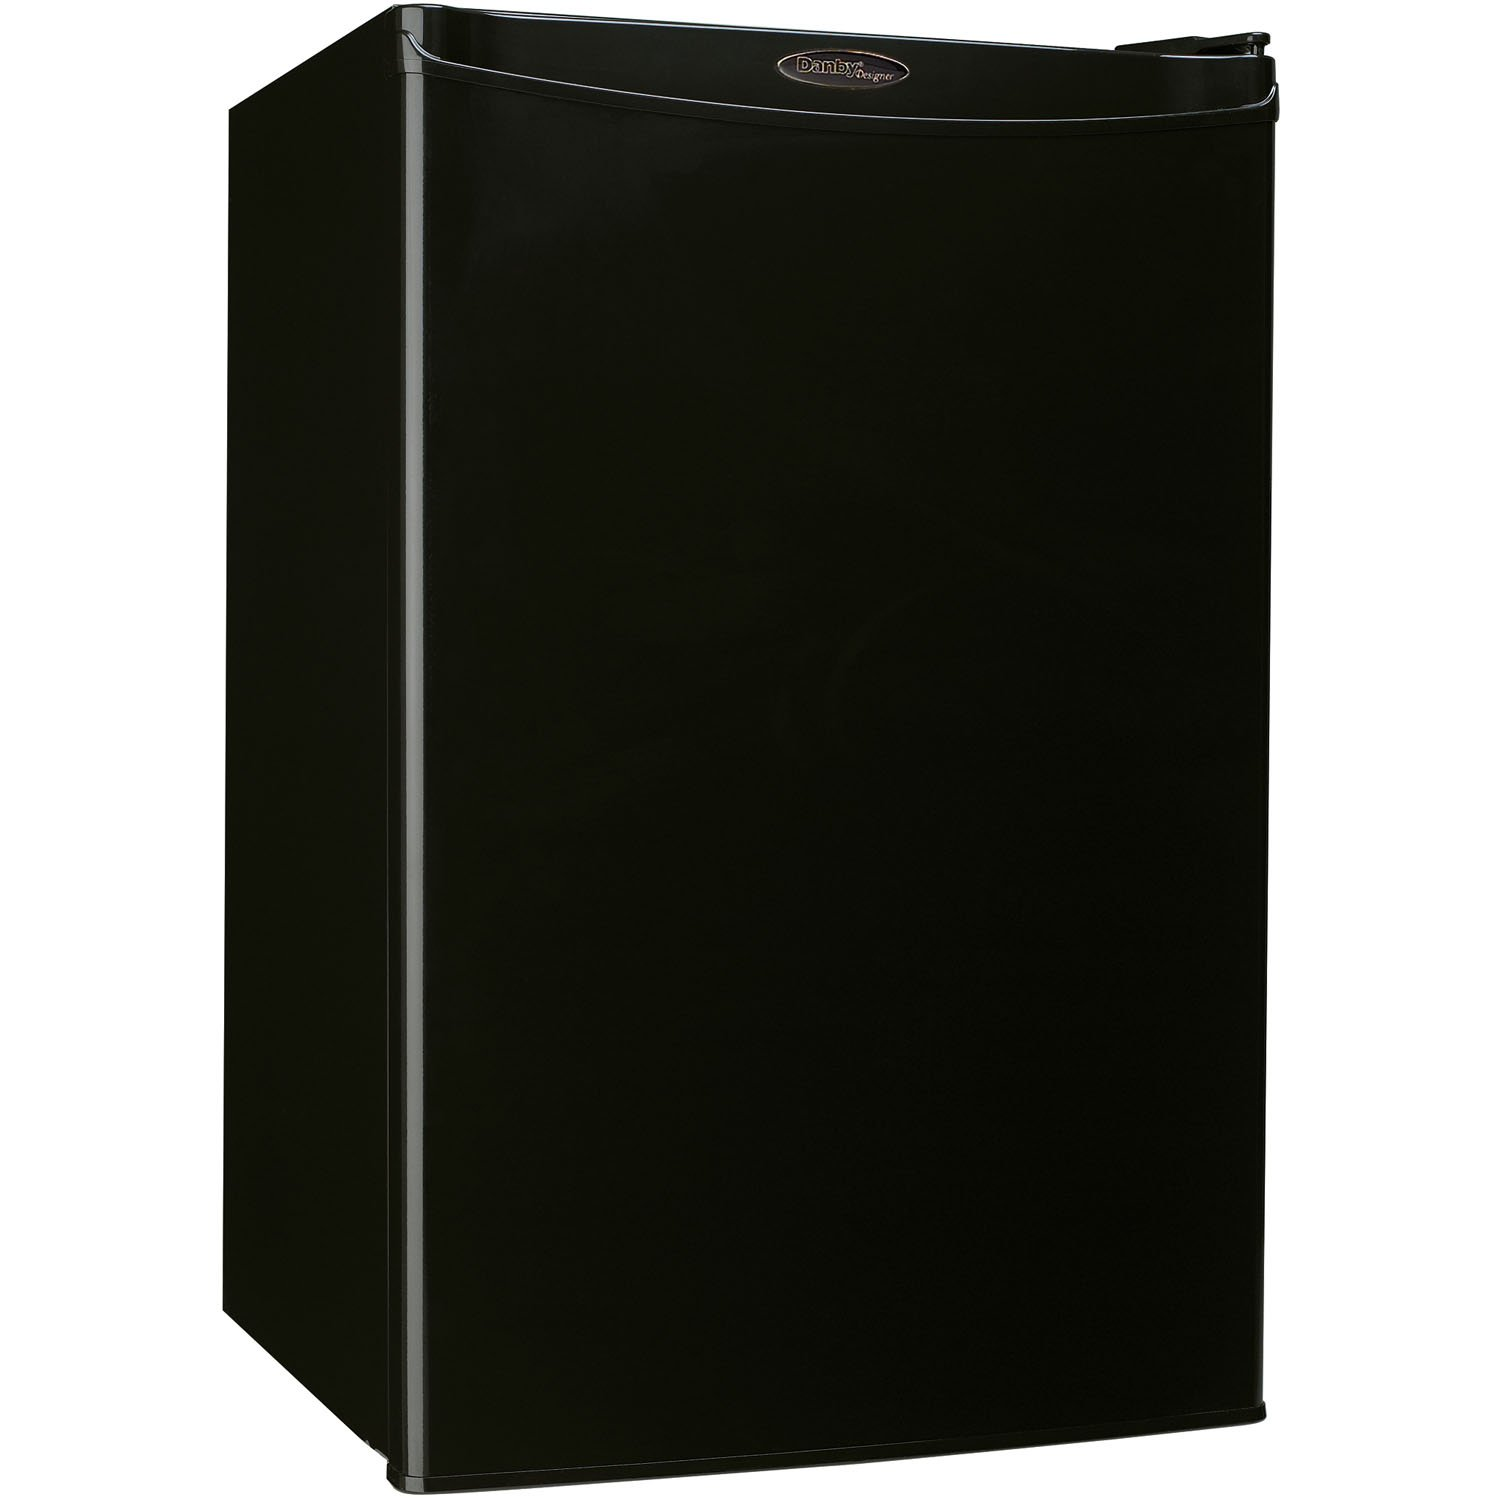 Danby Designer DCR044A2BDD Compact Refrigerator, 4.4-Cubic Feet, Black by Danby